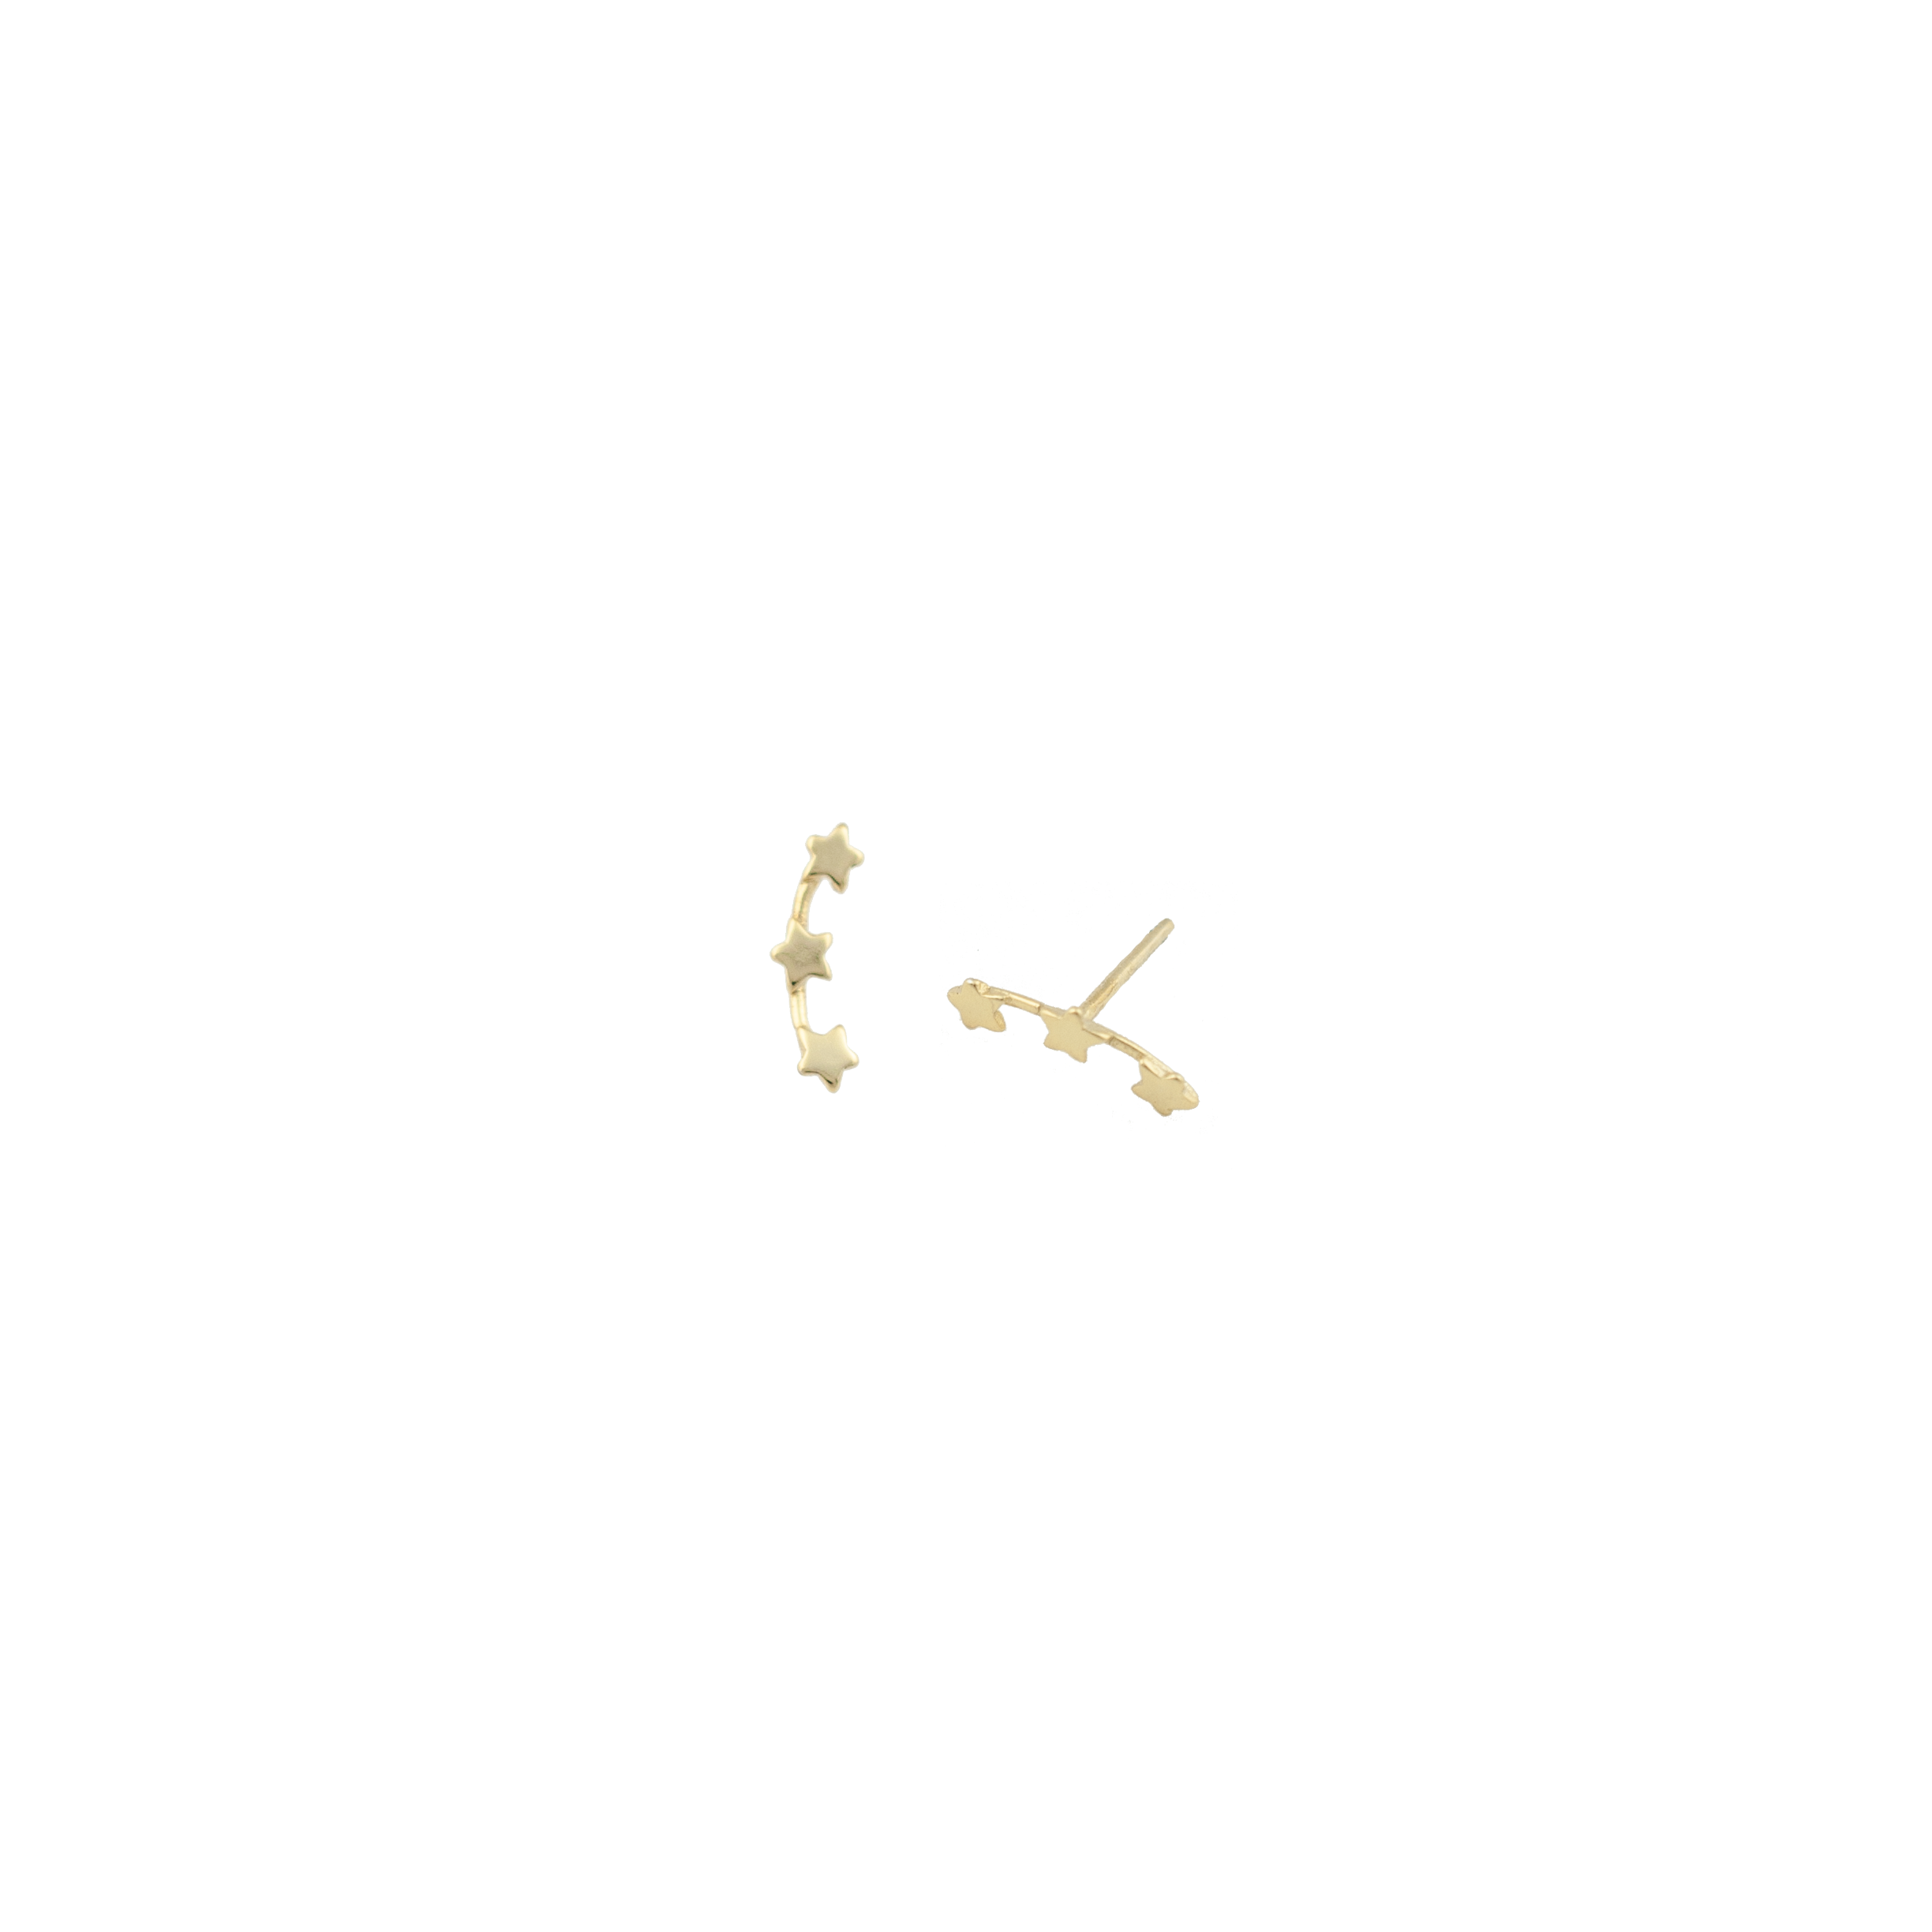 Three stars gold fill stud Climber earrings